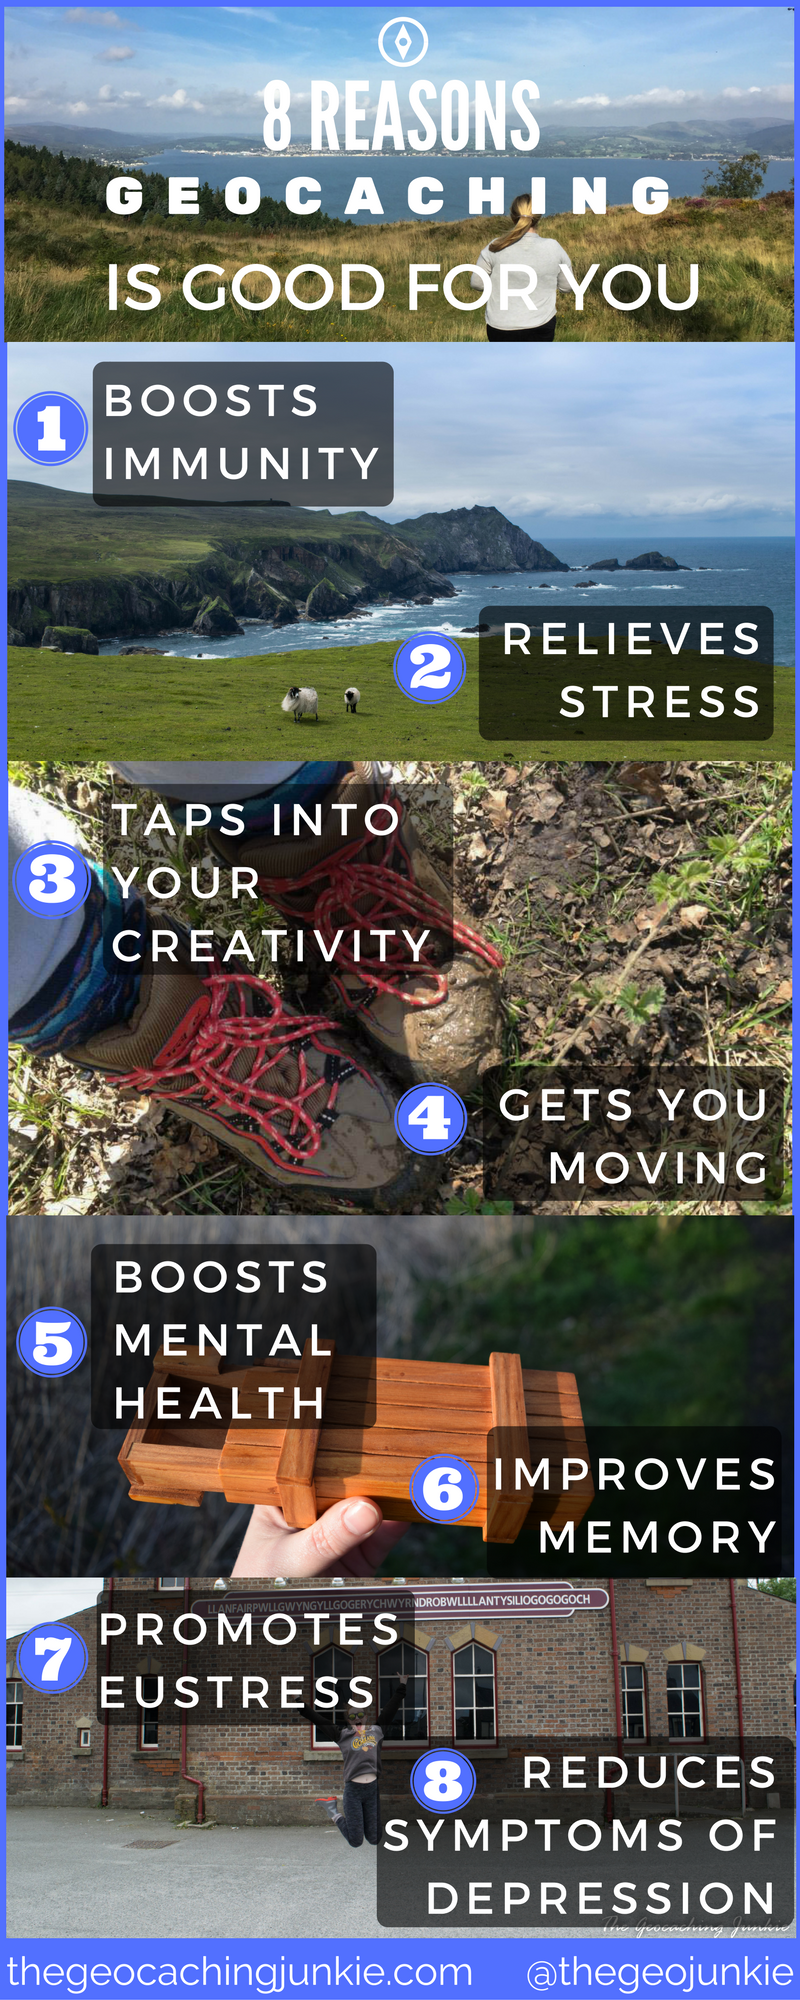 Geocaching is Good For You 8 Reasons Why Geocaching